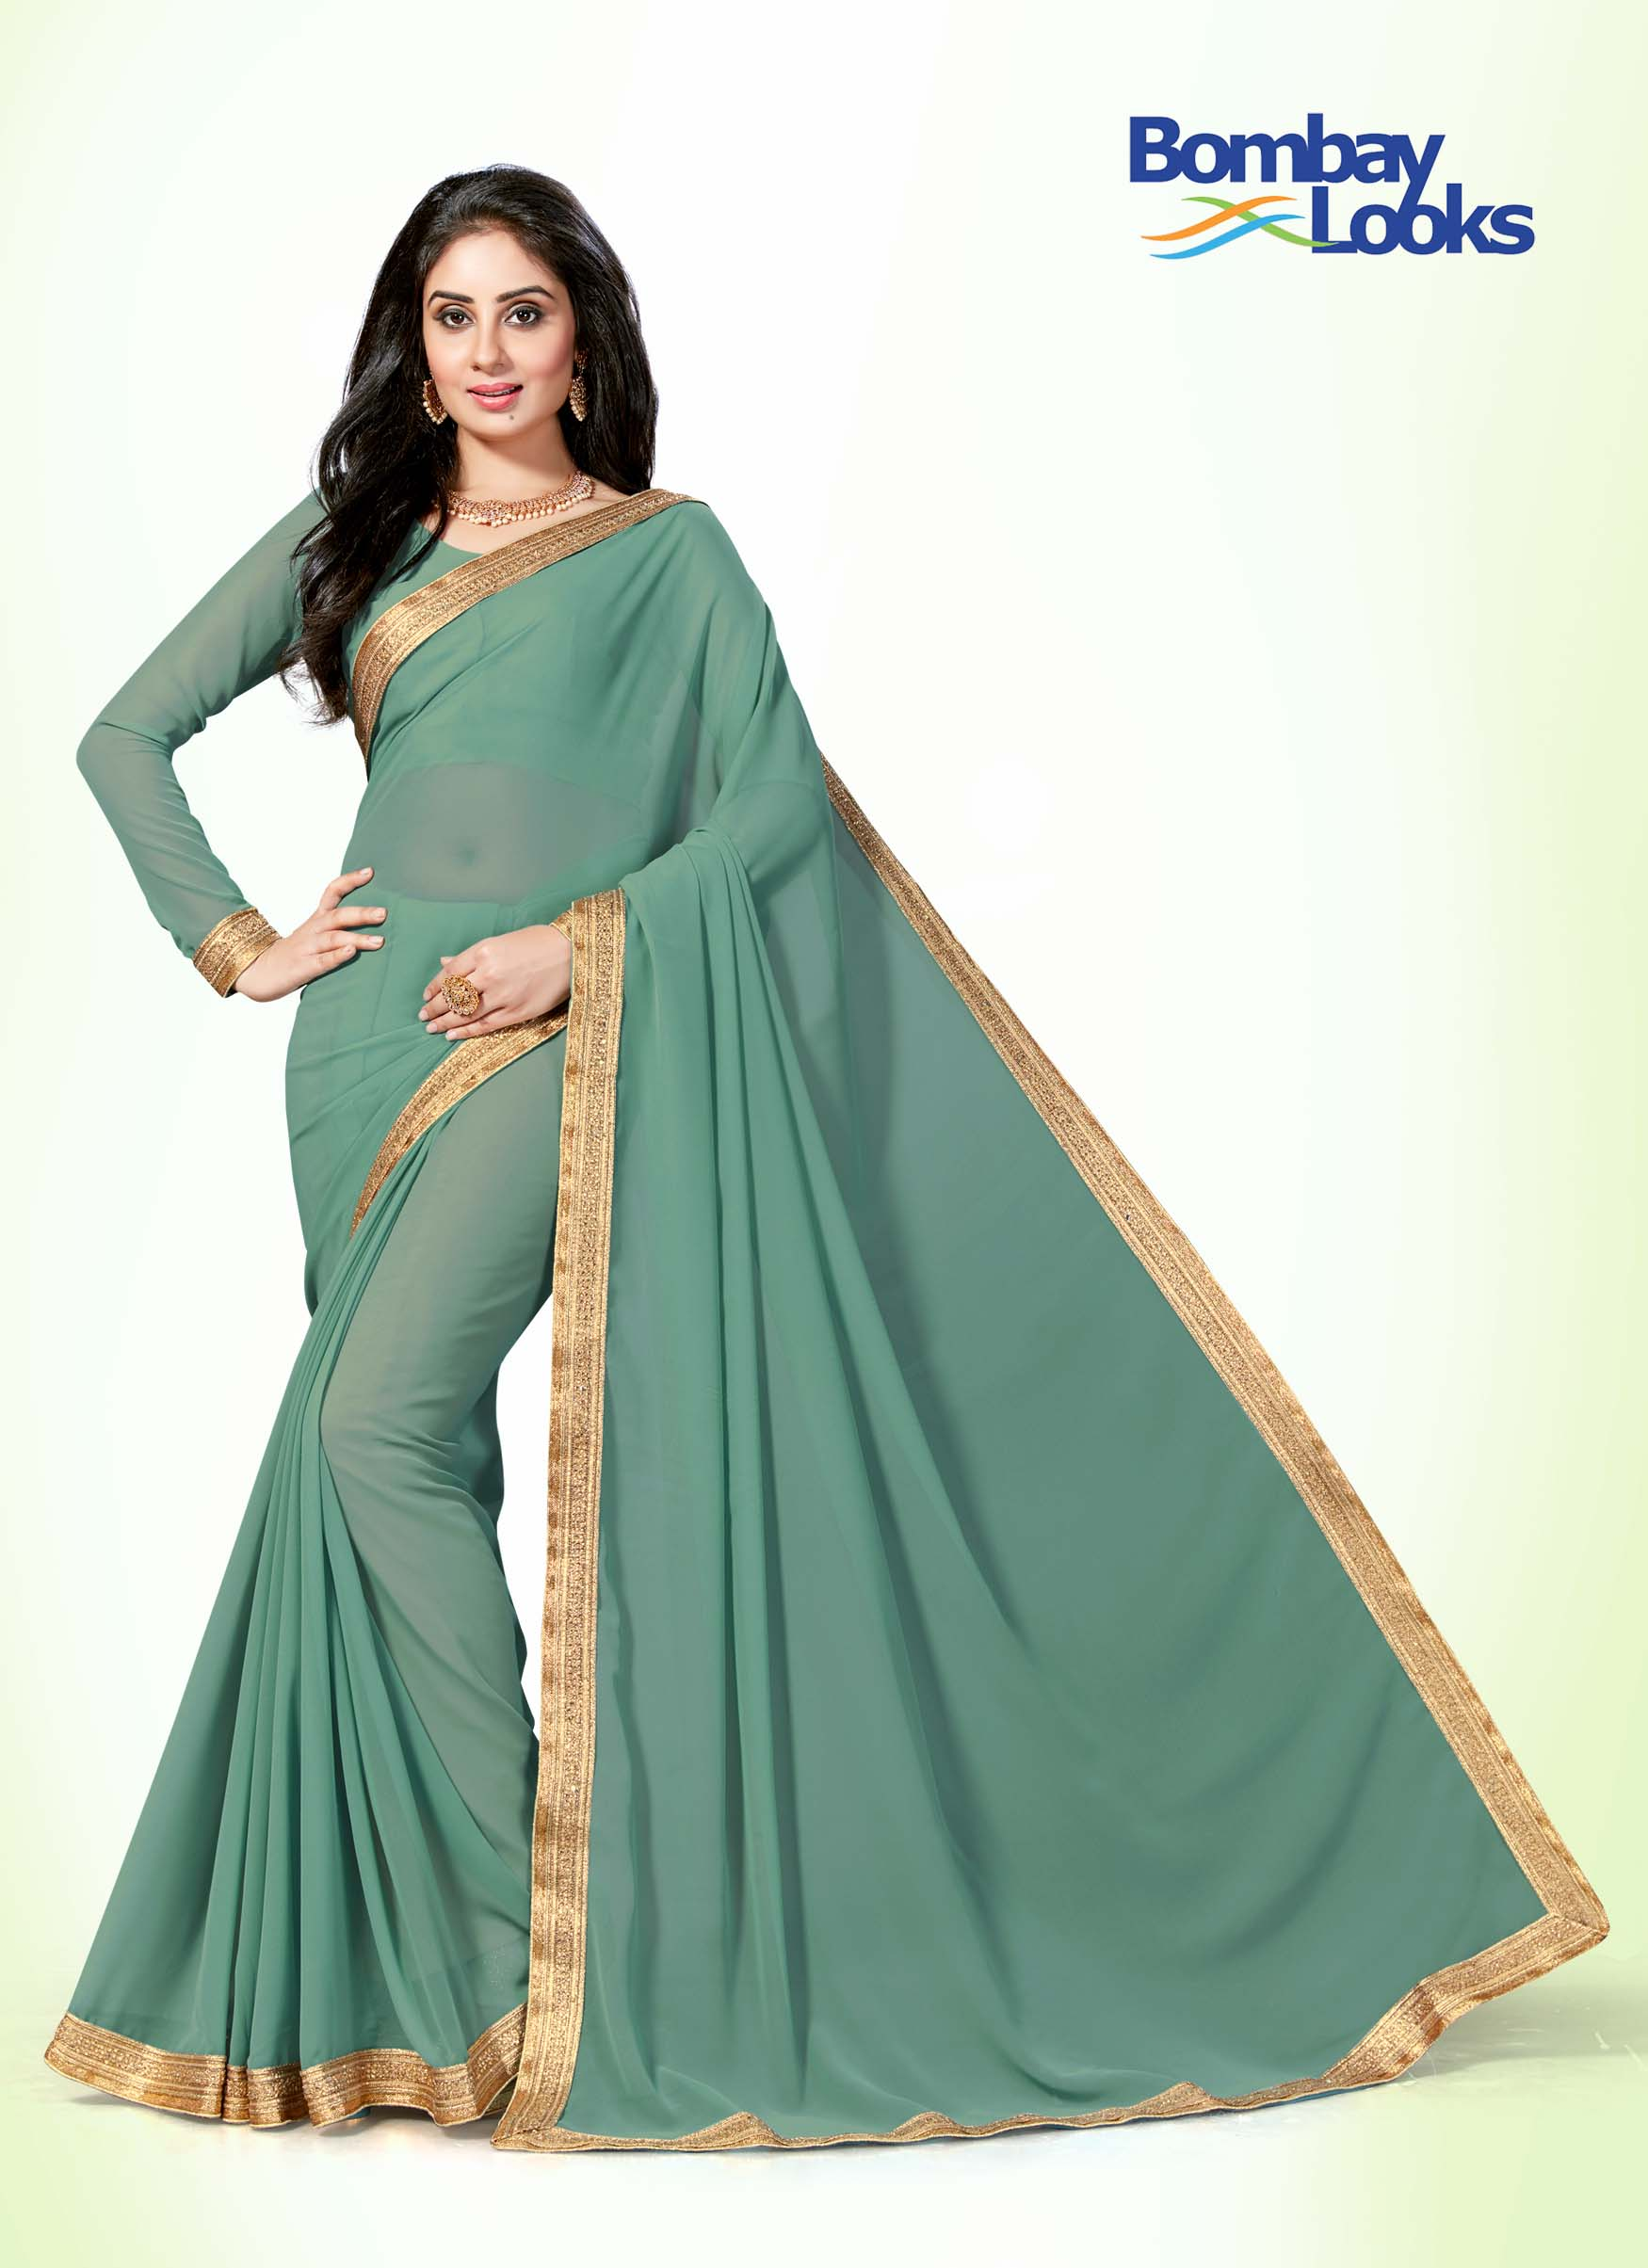 Dusty jade saree with gold stone border